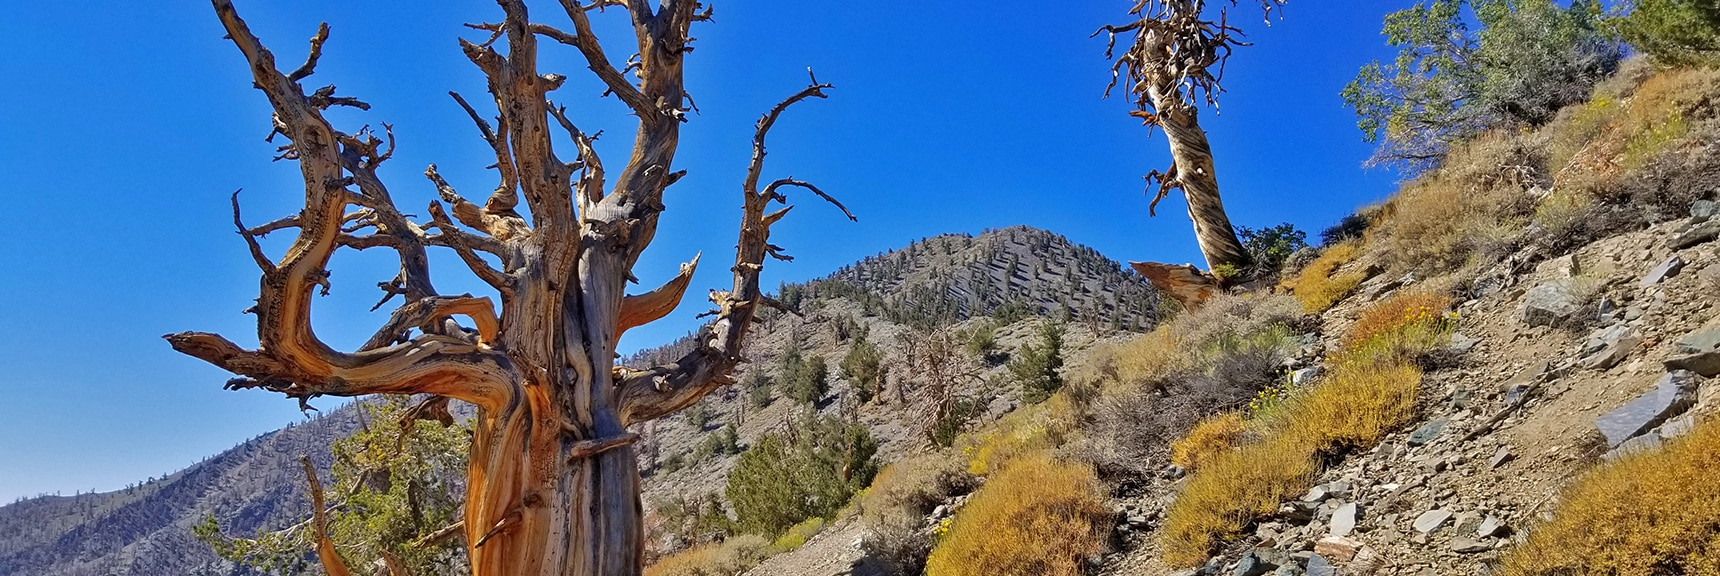 Bristlecone Pines Appear While Closing in on Telescope Peak Summit   Telescope Peak Summit from Wildrose Charcoal Kilns Parking Area, Panamint Mountains, Death Valley National Park, California